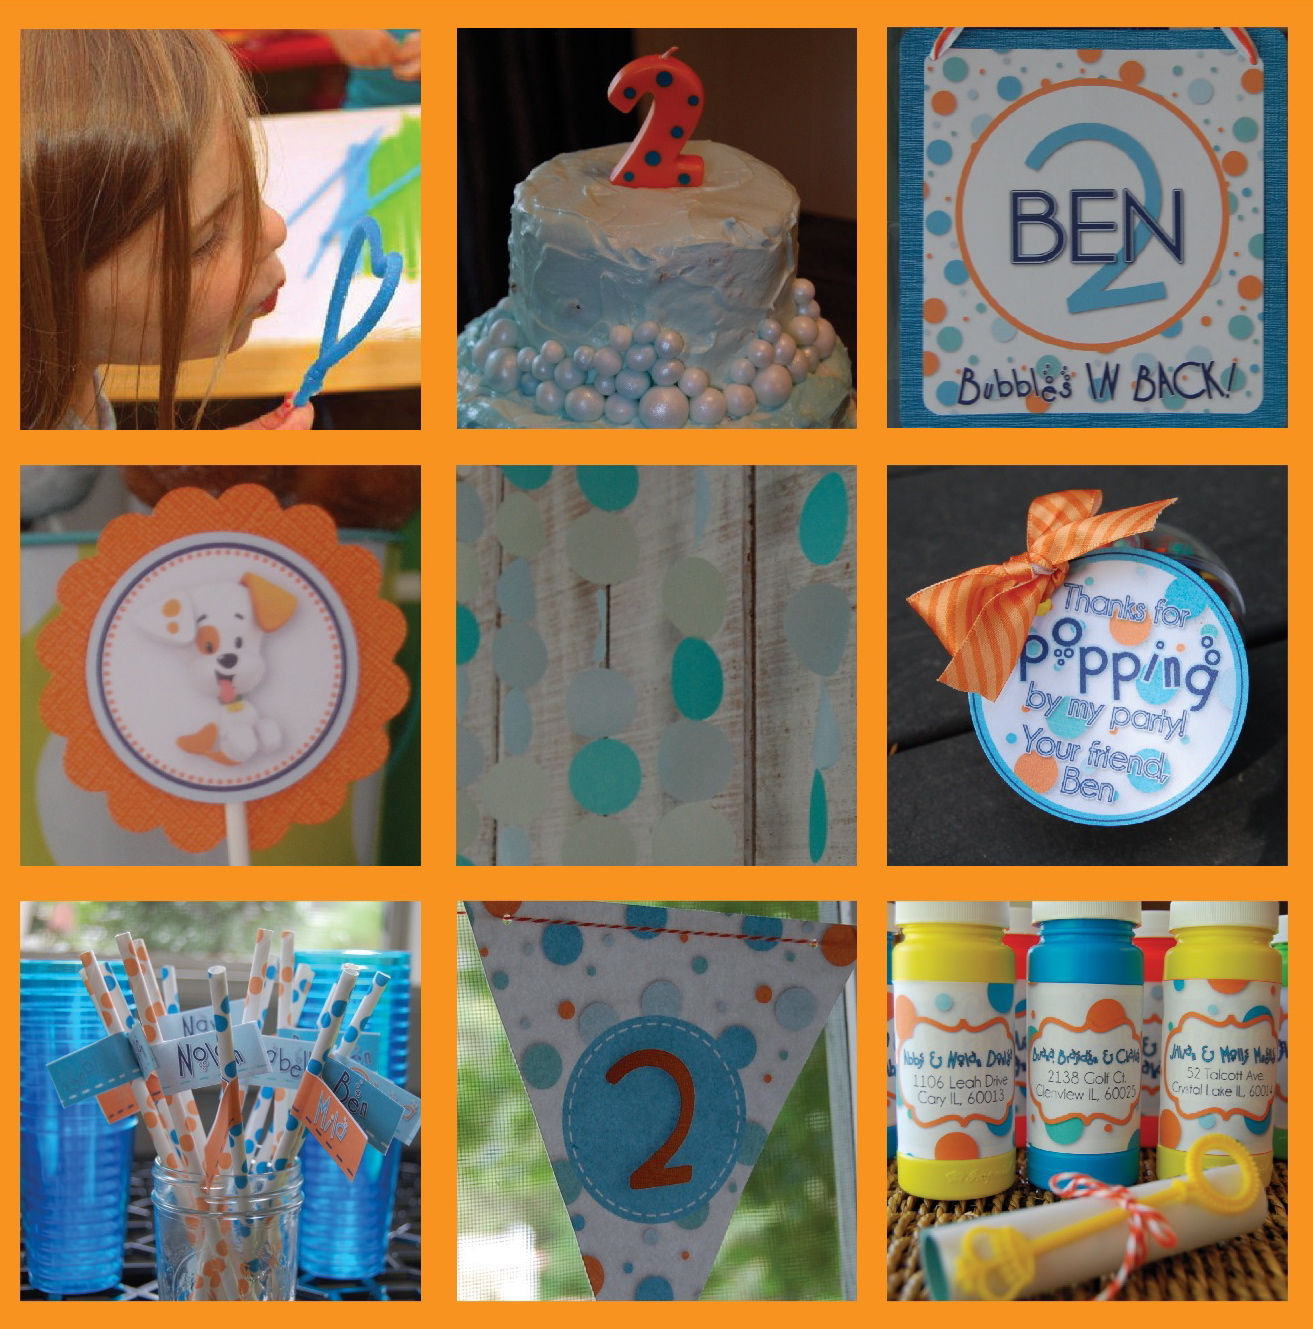 Beth kruse custom creations bubble party - Bubble guppie birthday ideas ...